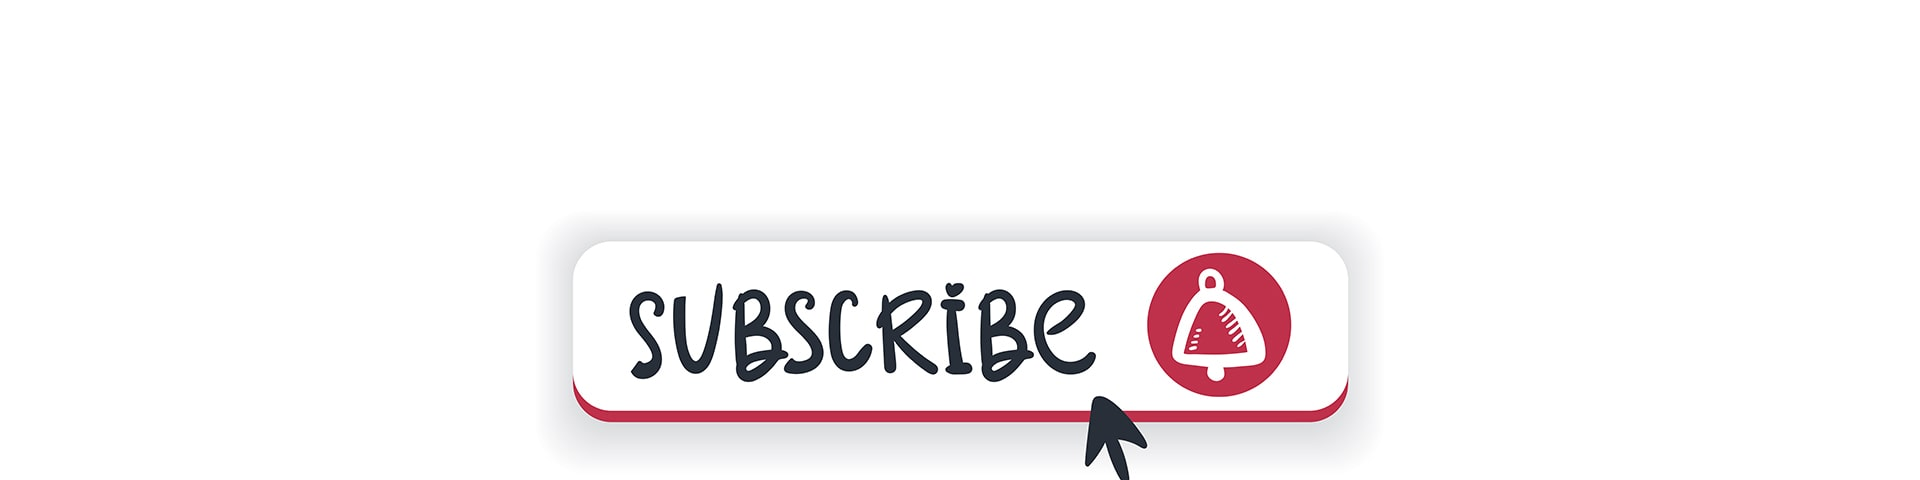 How to Manage Subscriptions on YouTube